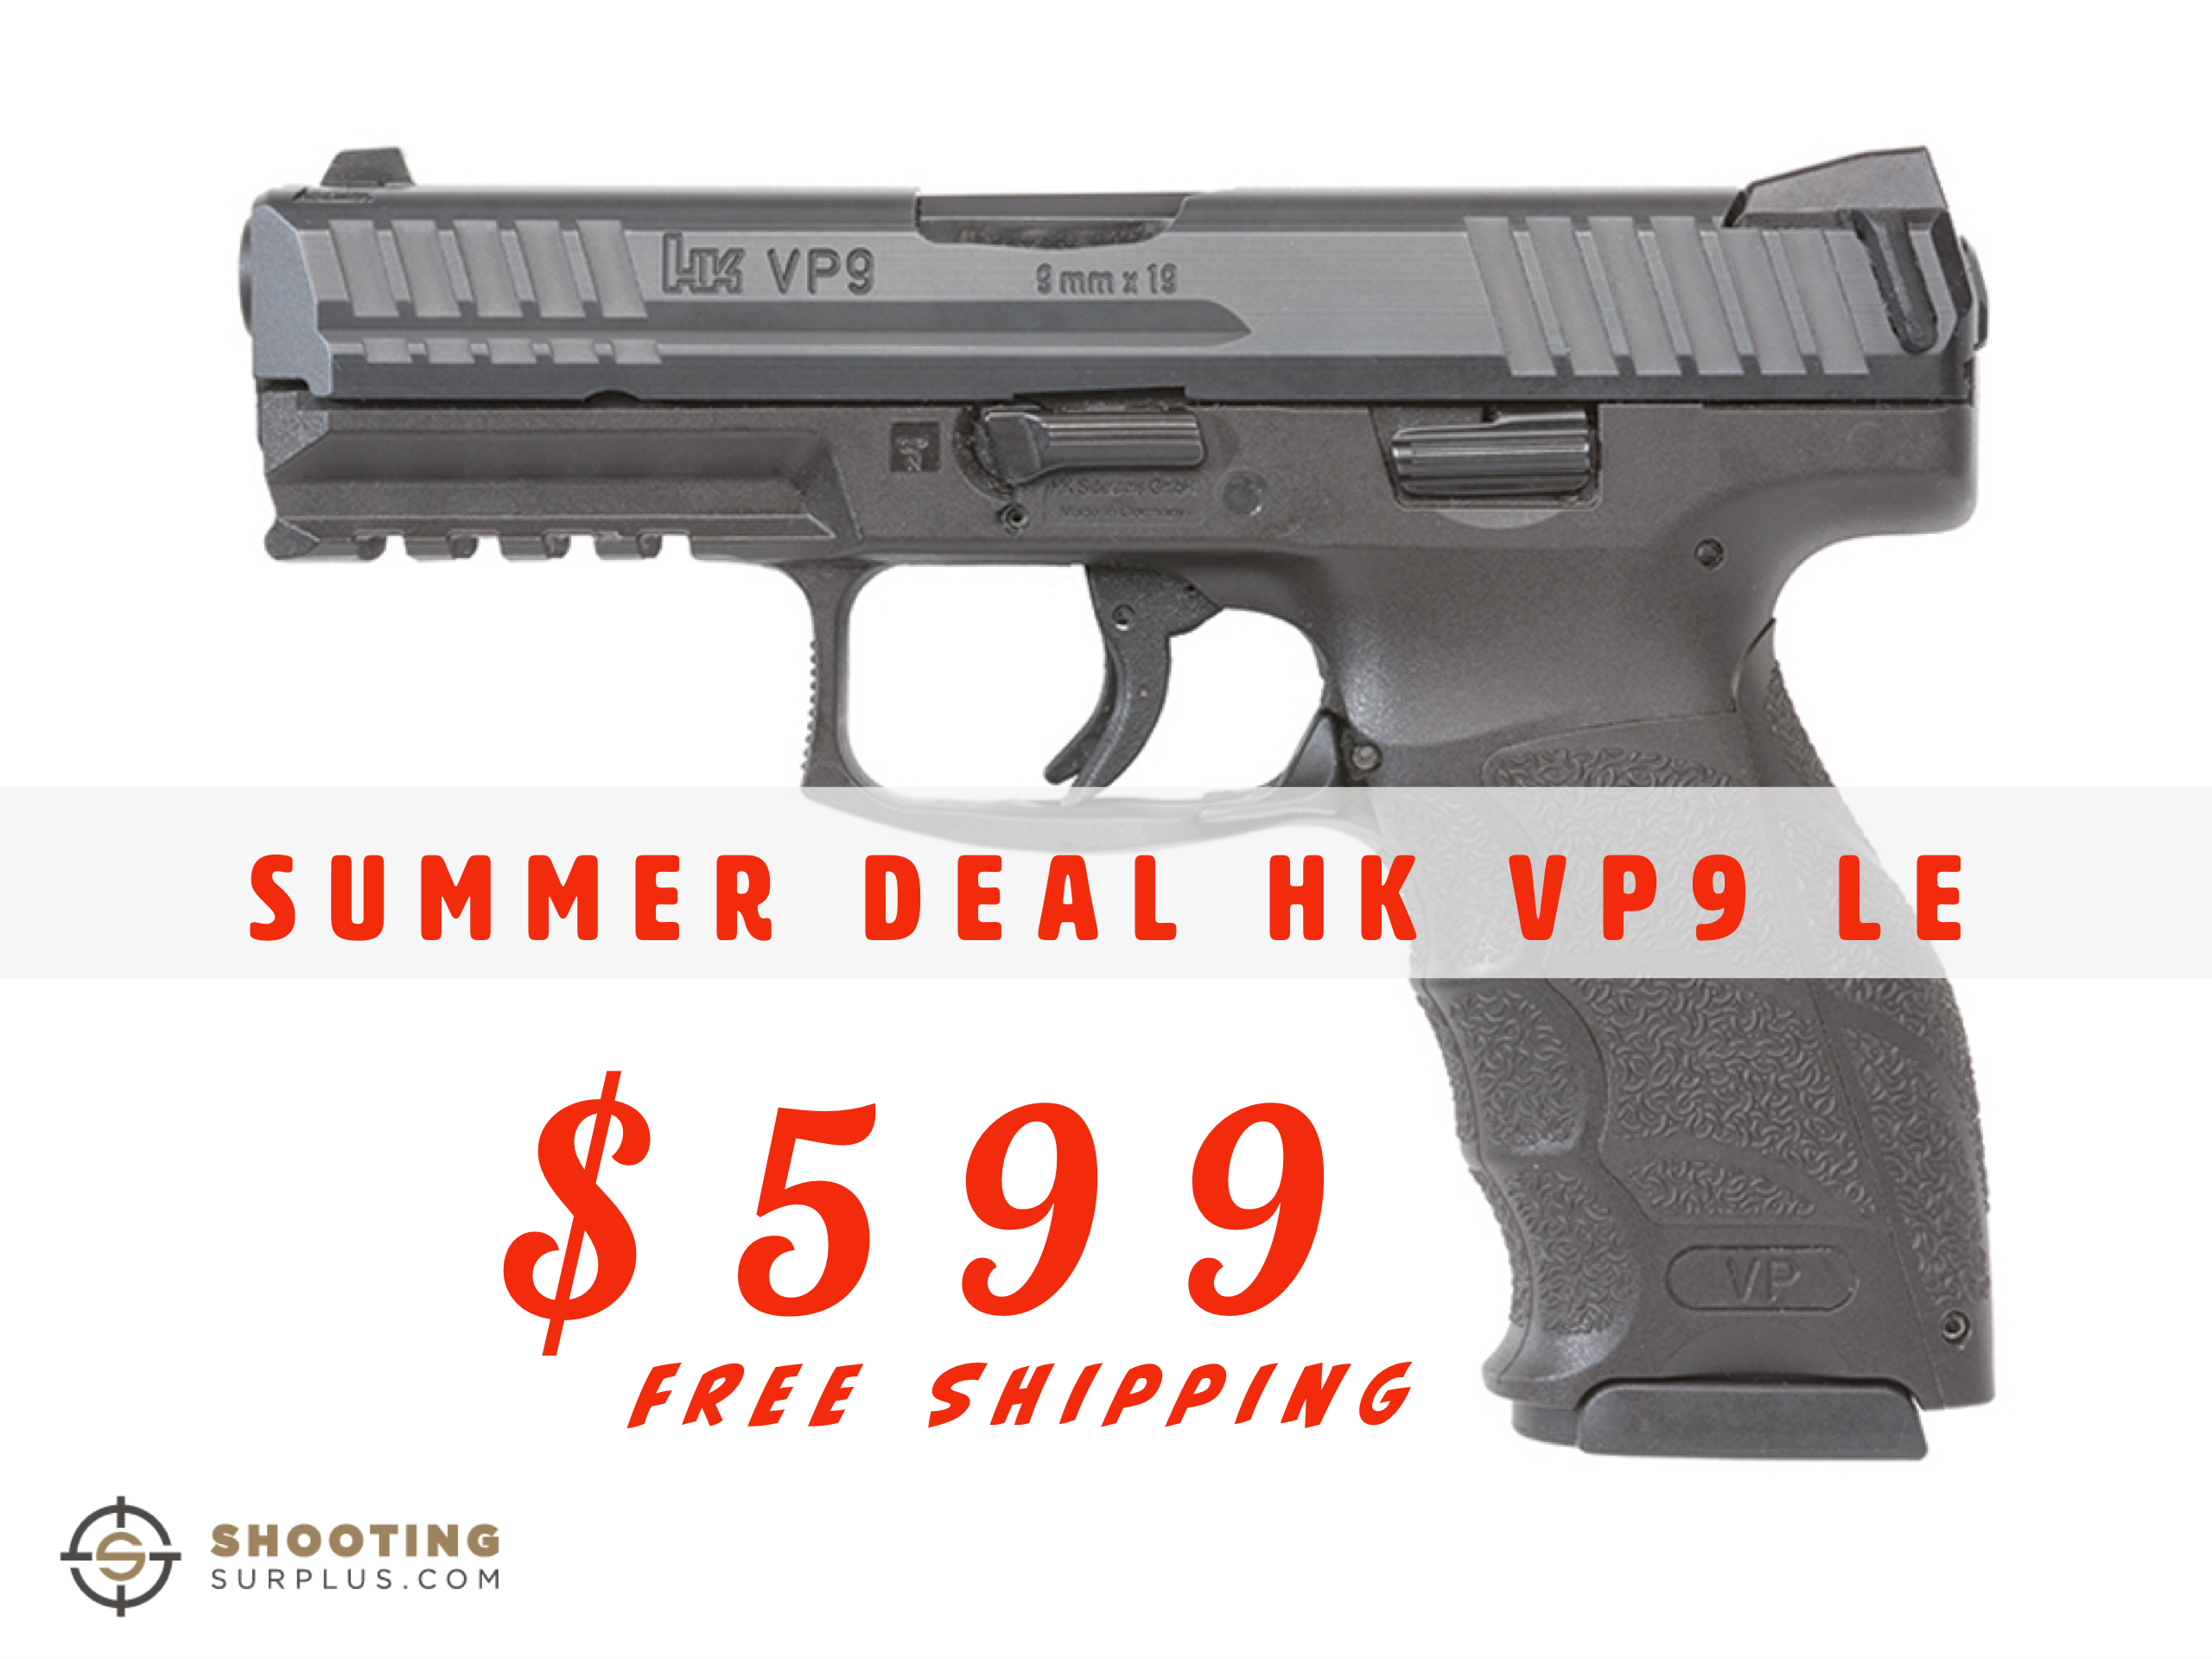 H&k vp9 9 / h&k vp9 le 9-photo-jun-26-10-55-55-am.png